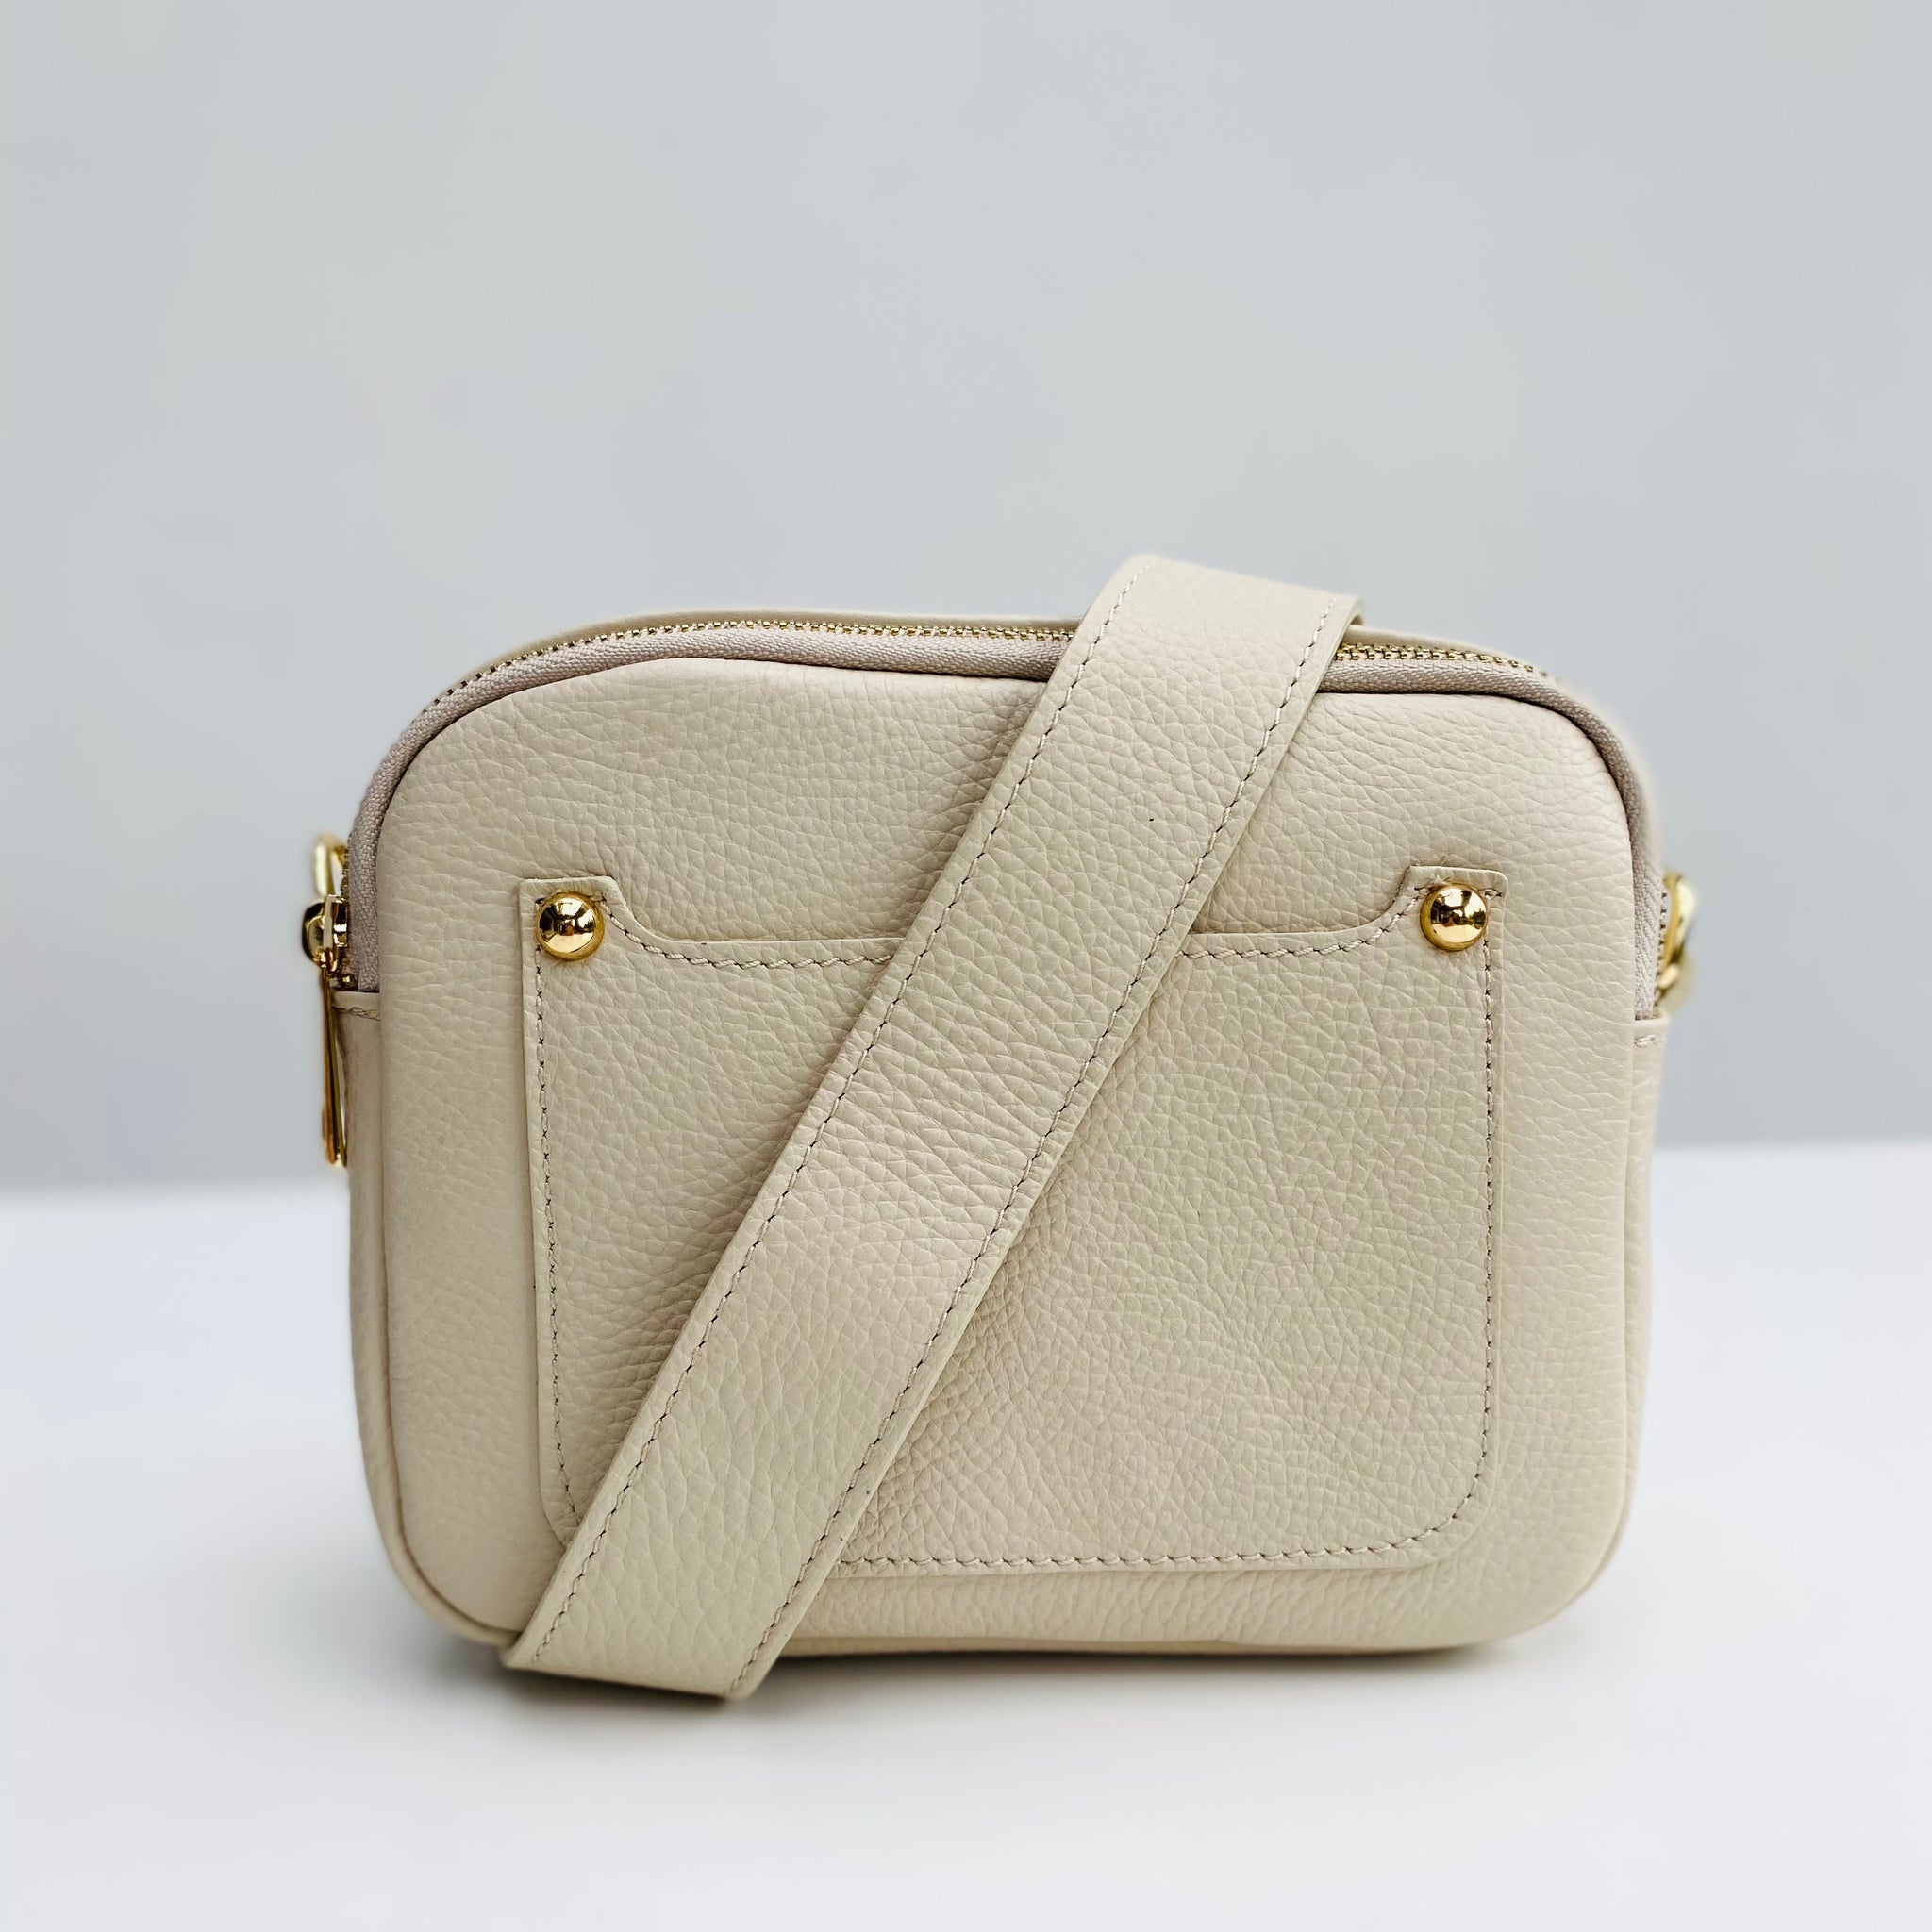 Cream Leather Double Zip Cross Body Bag wide strap